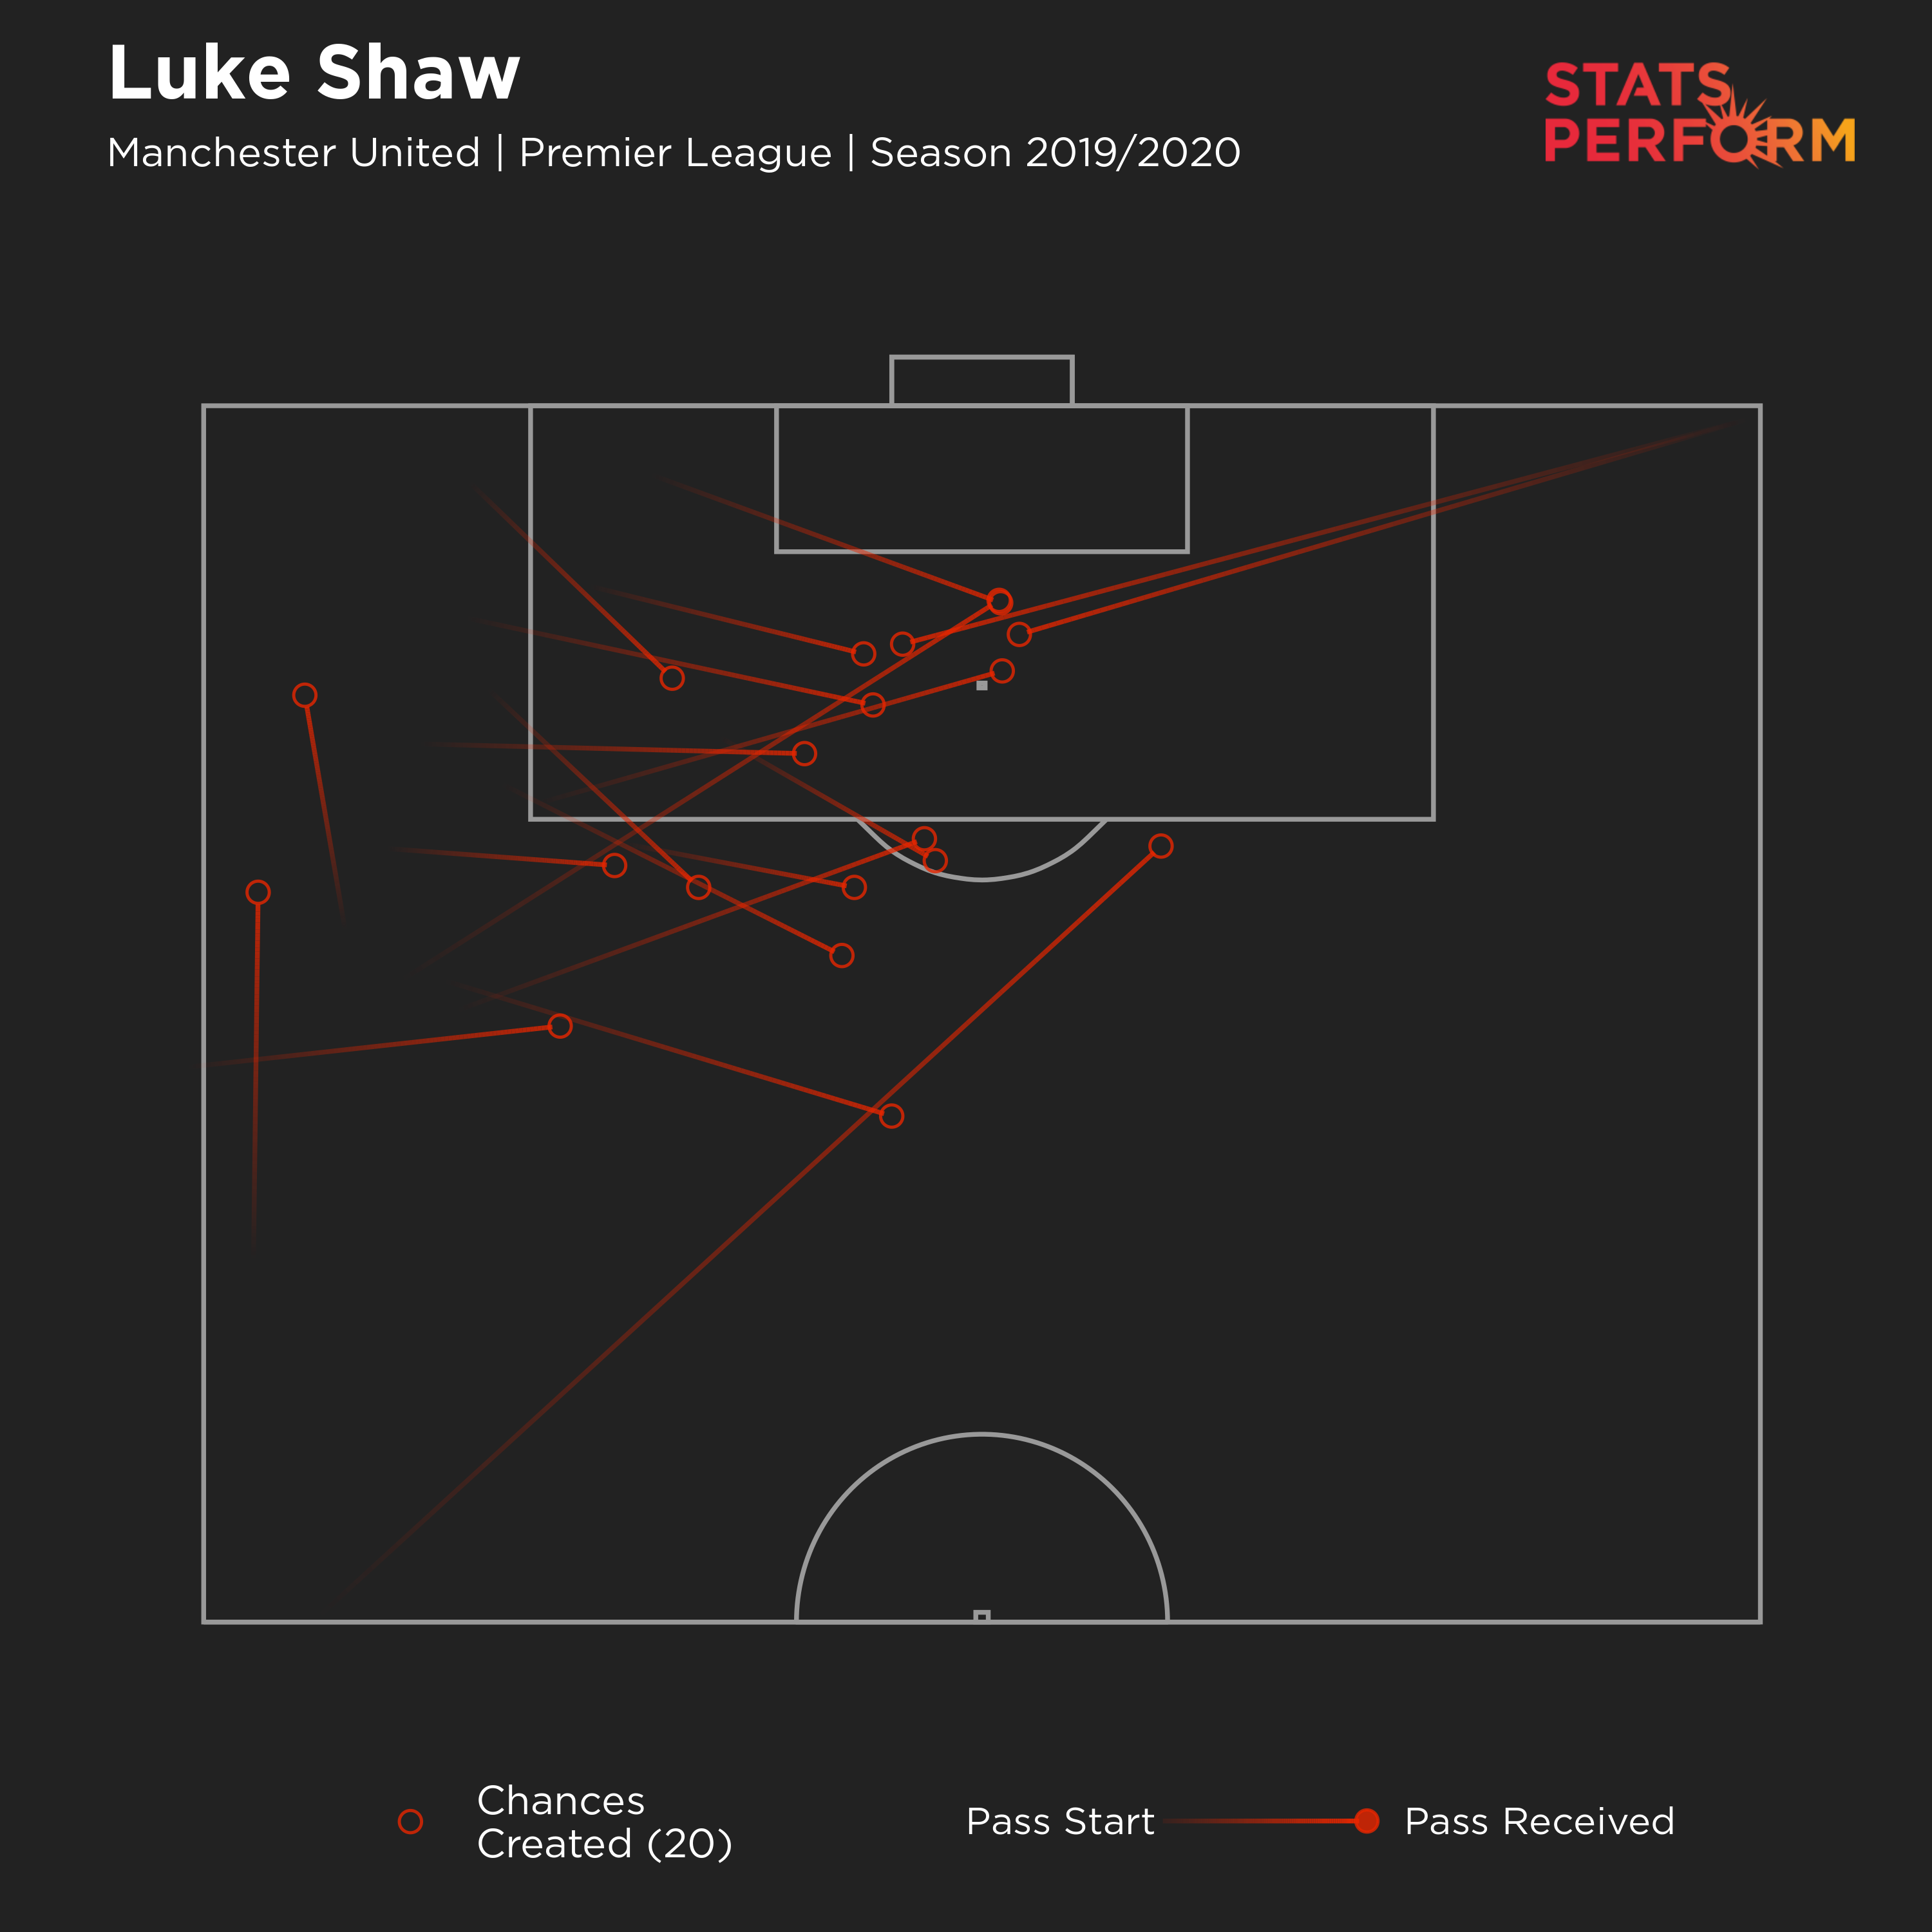 Luke Shaw's chances created map for 2019-20